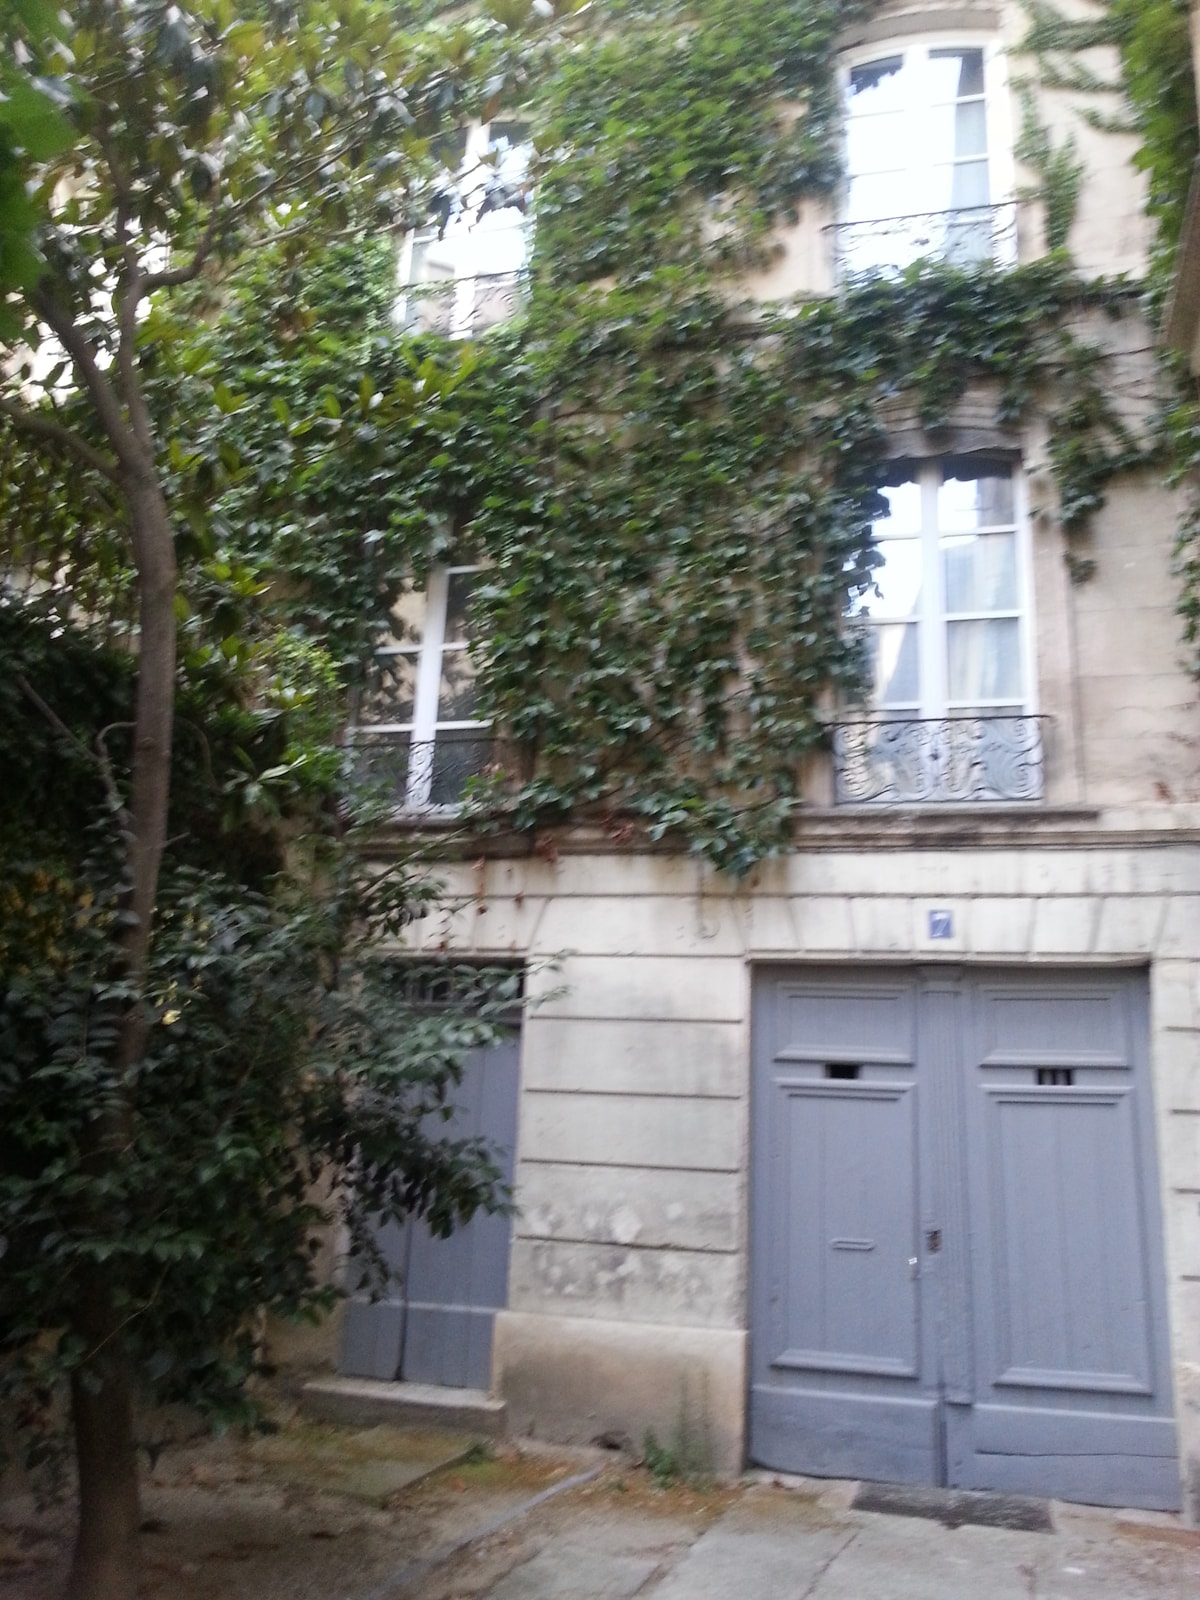 2 room apartment in an old building